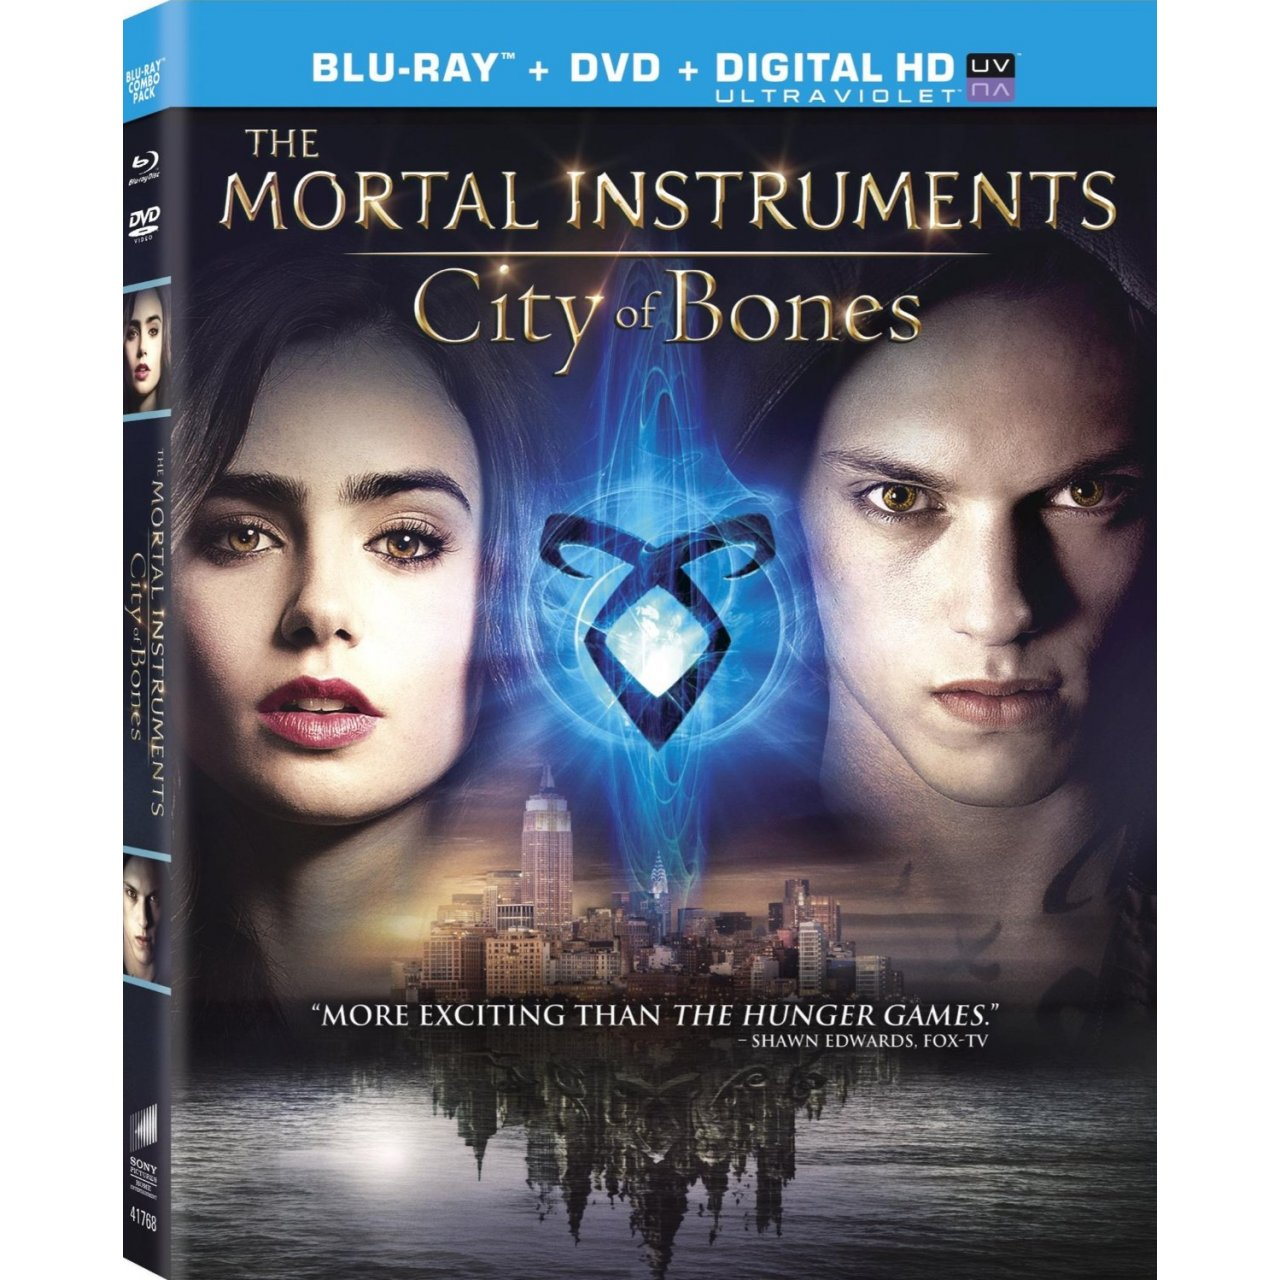 Purchase The Mortal Instruments: City of Bones in Blu Ray and DVD